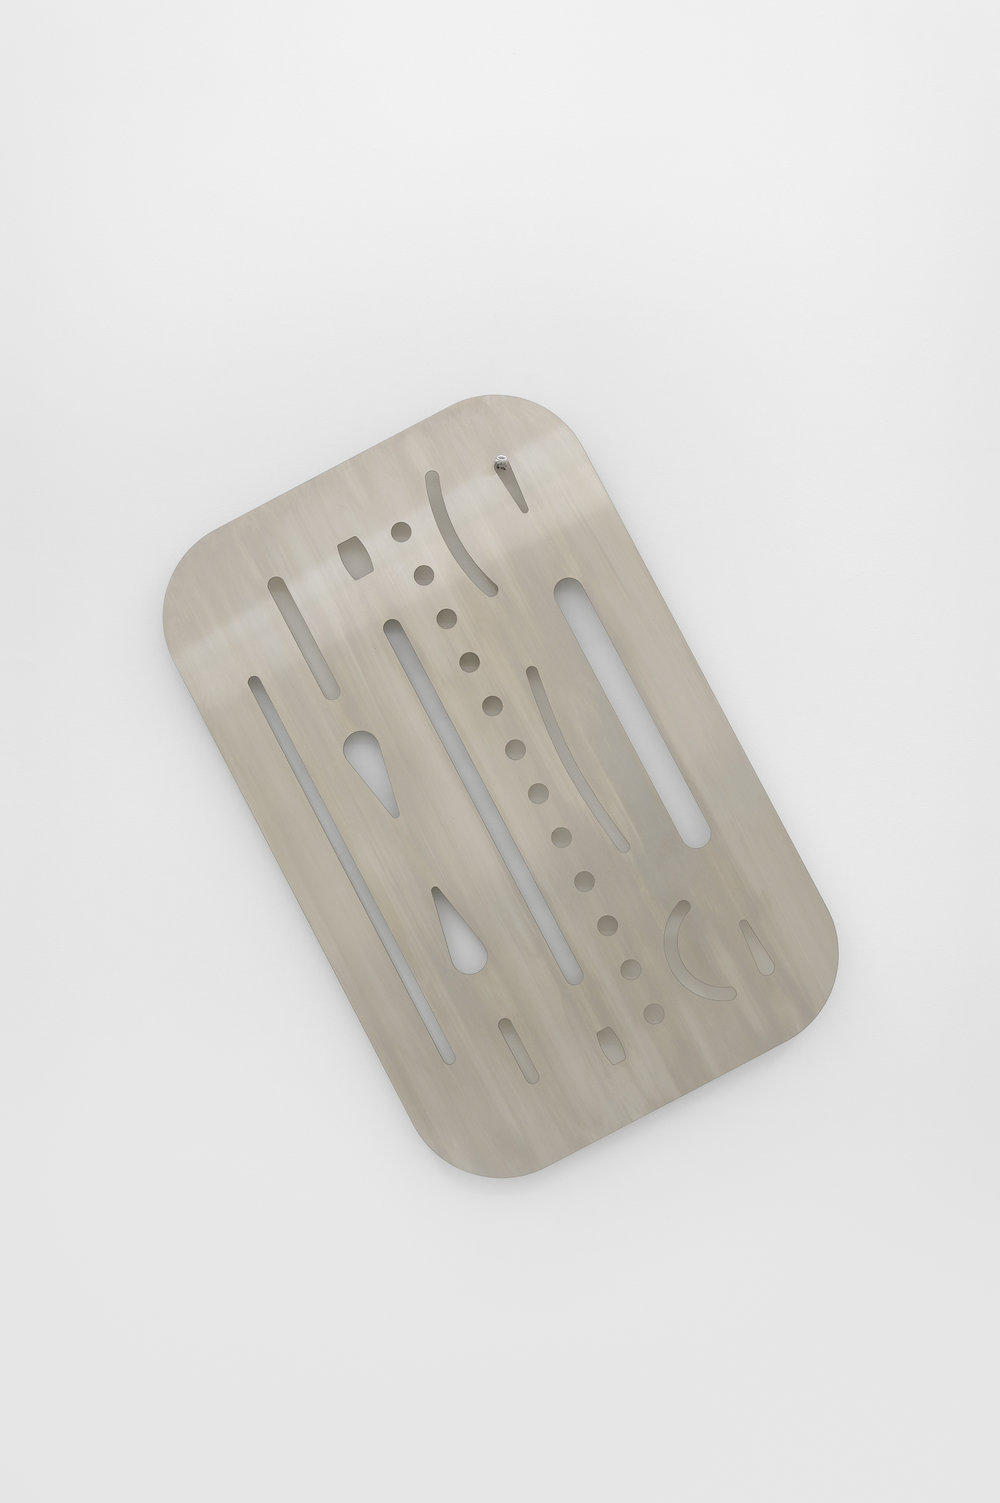 Eraser Shield, 2015 stainless steel edition of 2 101,5 x 65,5 x 0,3 cm - 40 x 25 3/4 x 0 1/8 inches